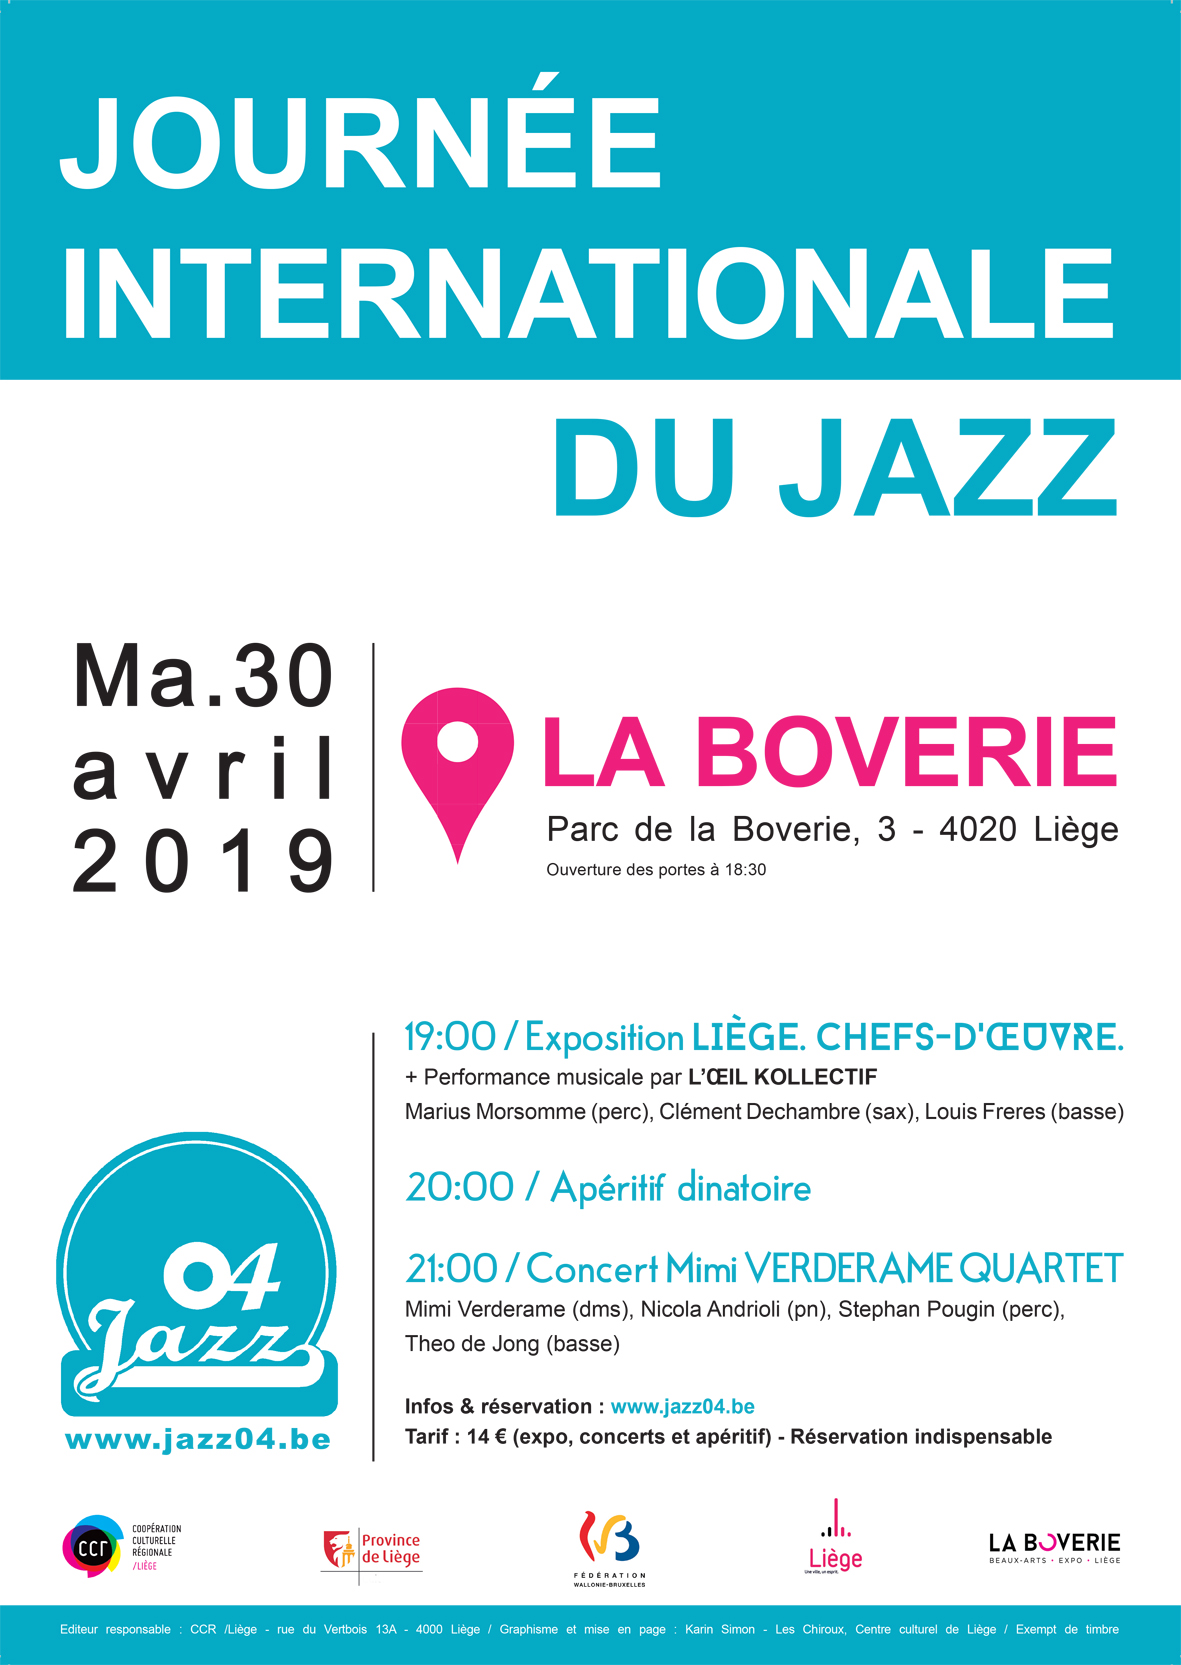 aff jazzhighlight2019 Print